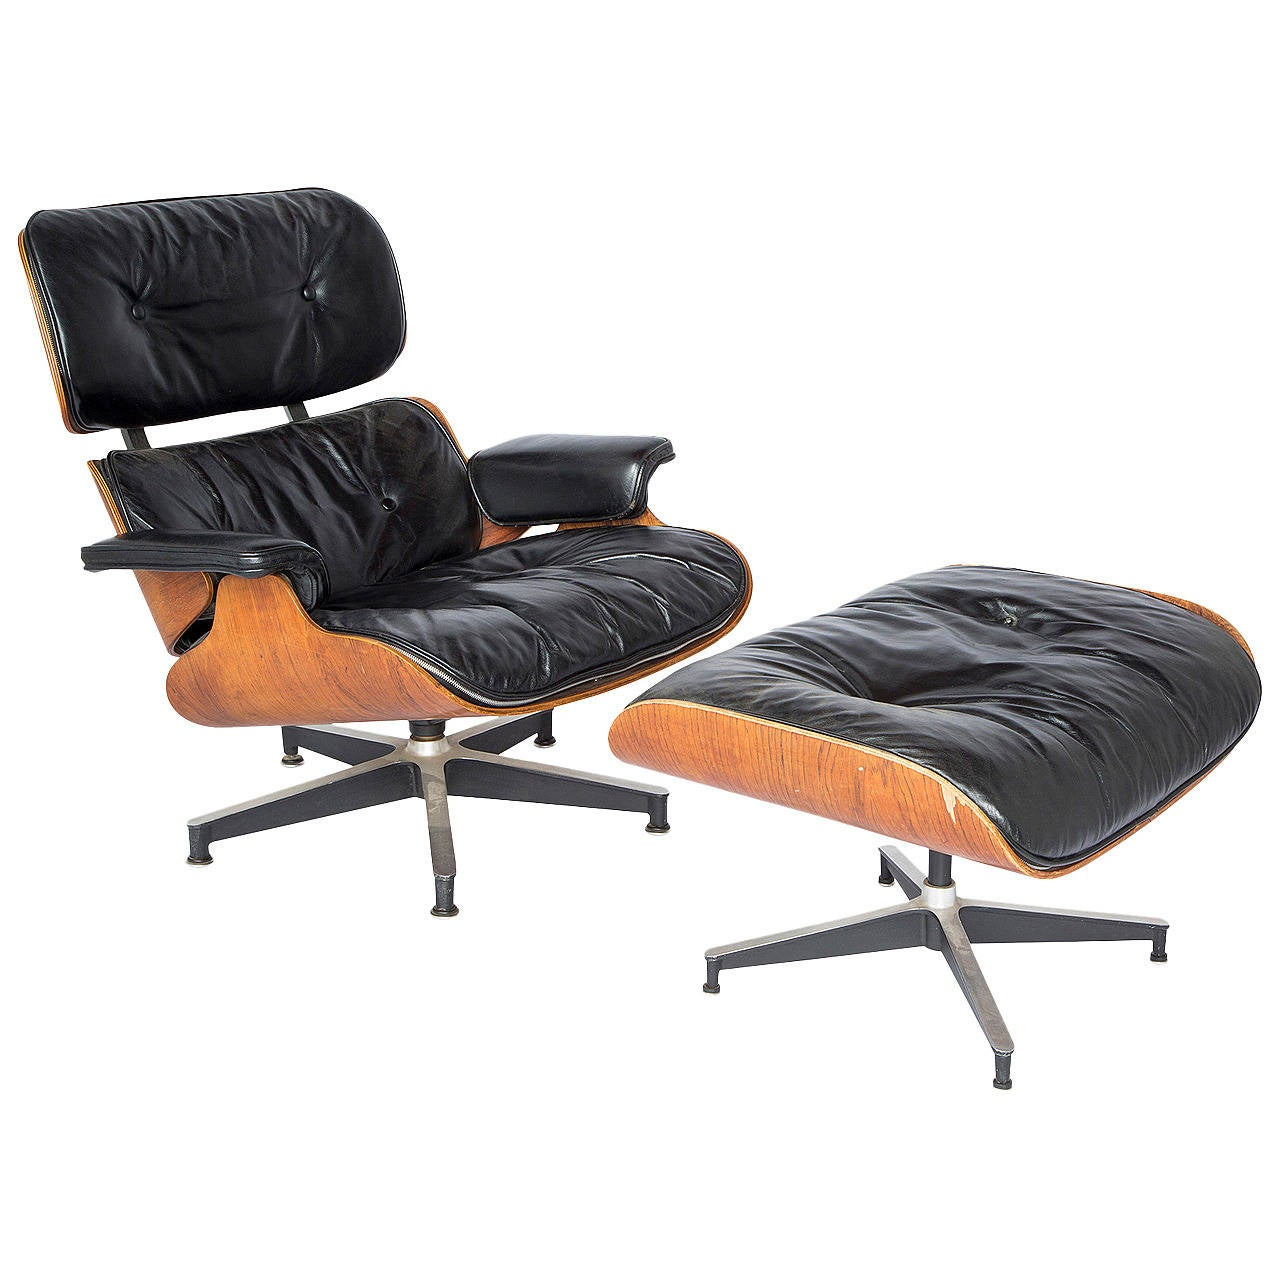 eames lounge chair and ottoman for sale at 1stdibs. Black Bedroom Furniture Sets. Home Design Ideas